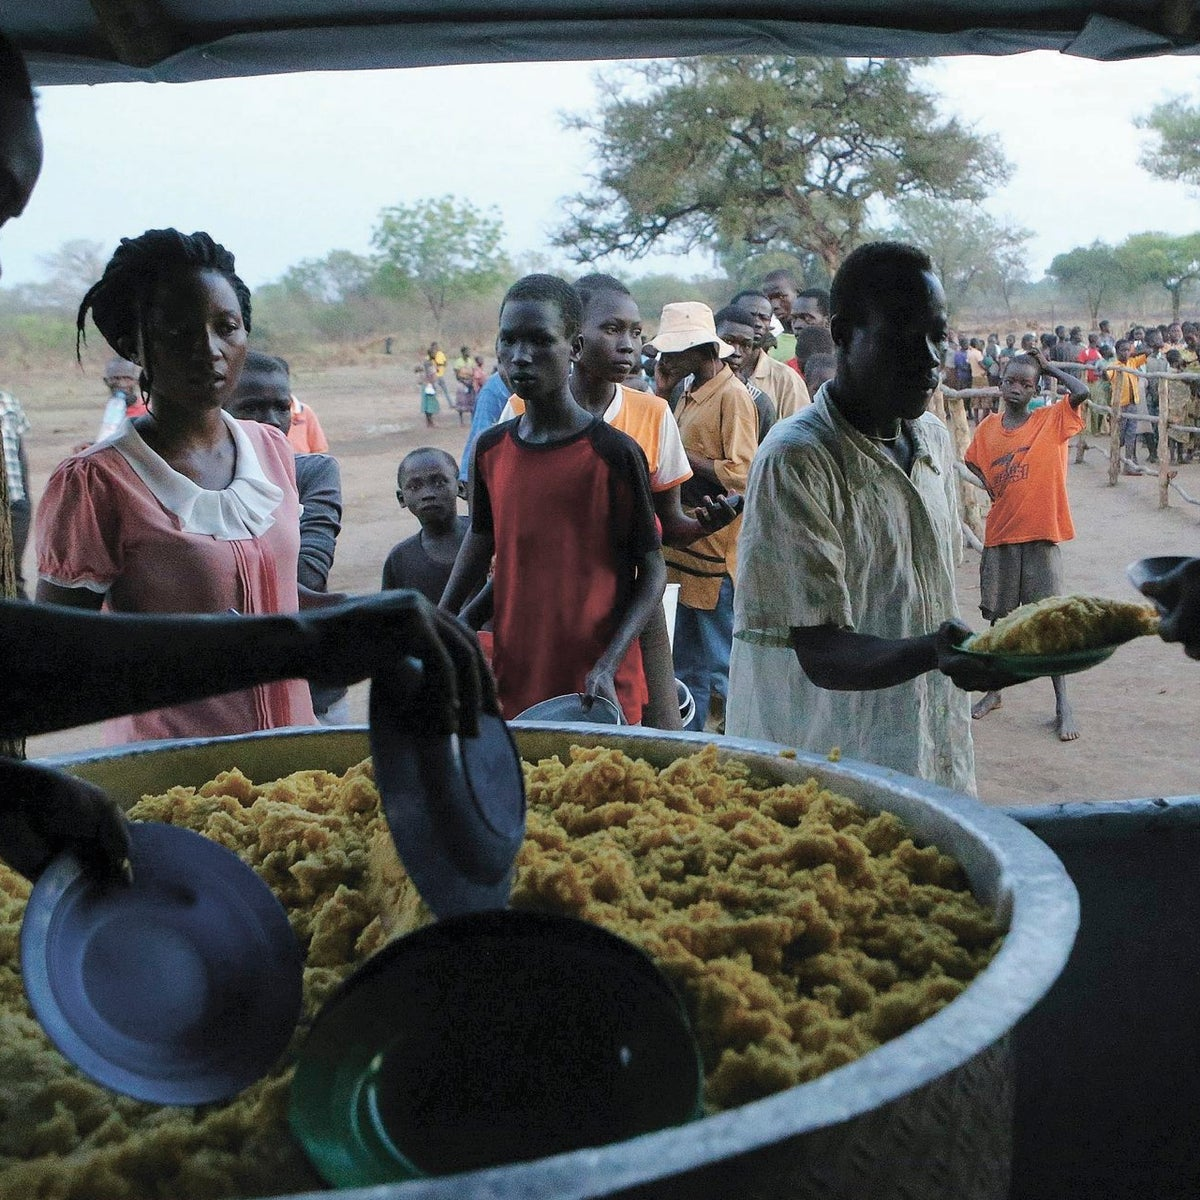 Refugees from South Sudan receive a warm meal on arrival at Bidi Bidi refugee resettlement camp near the border with South Sudan, in Yumbe district, northern Uganda, December 7, 2016.